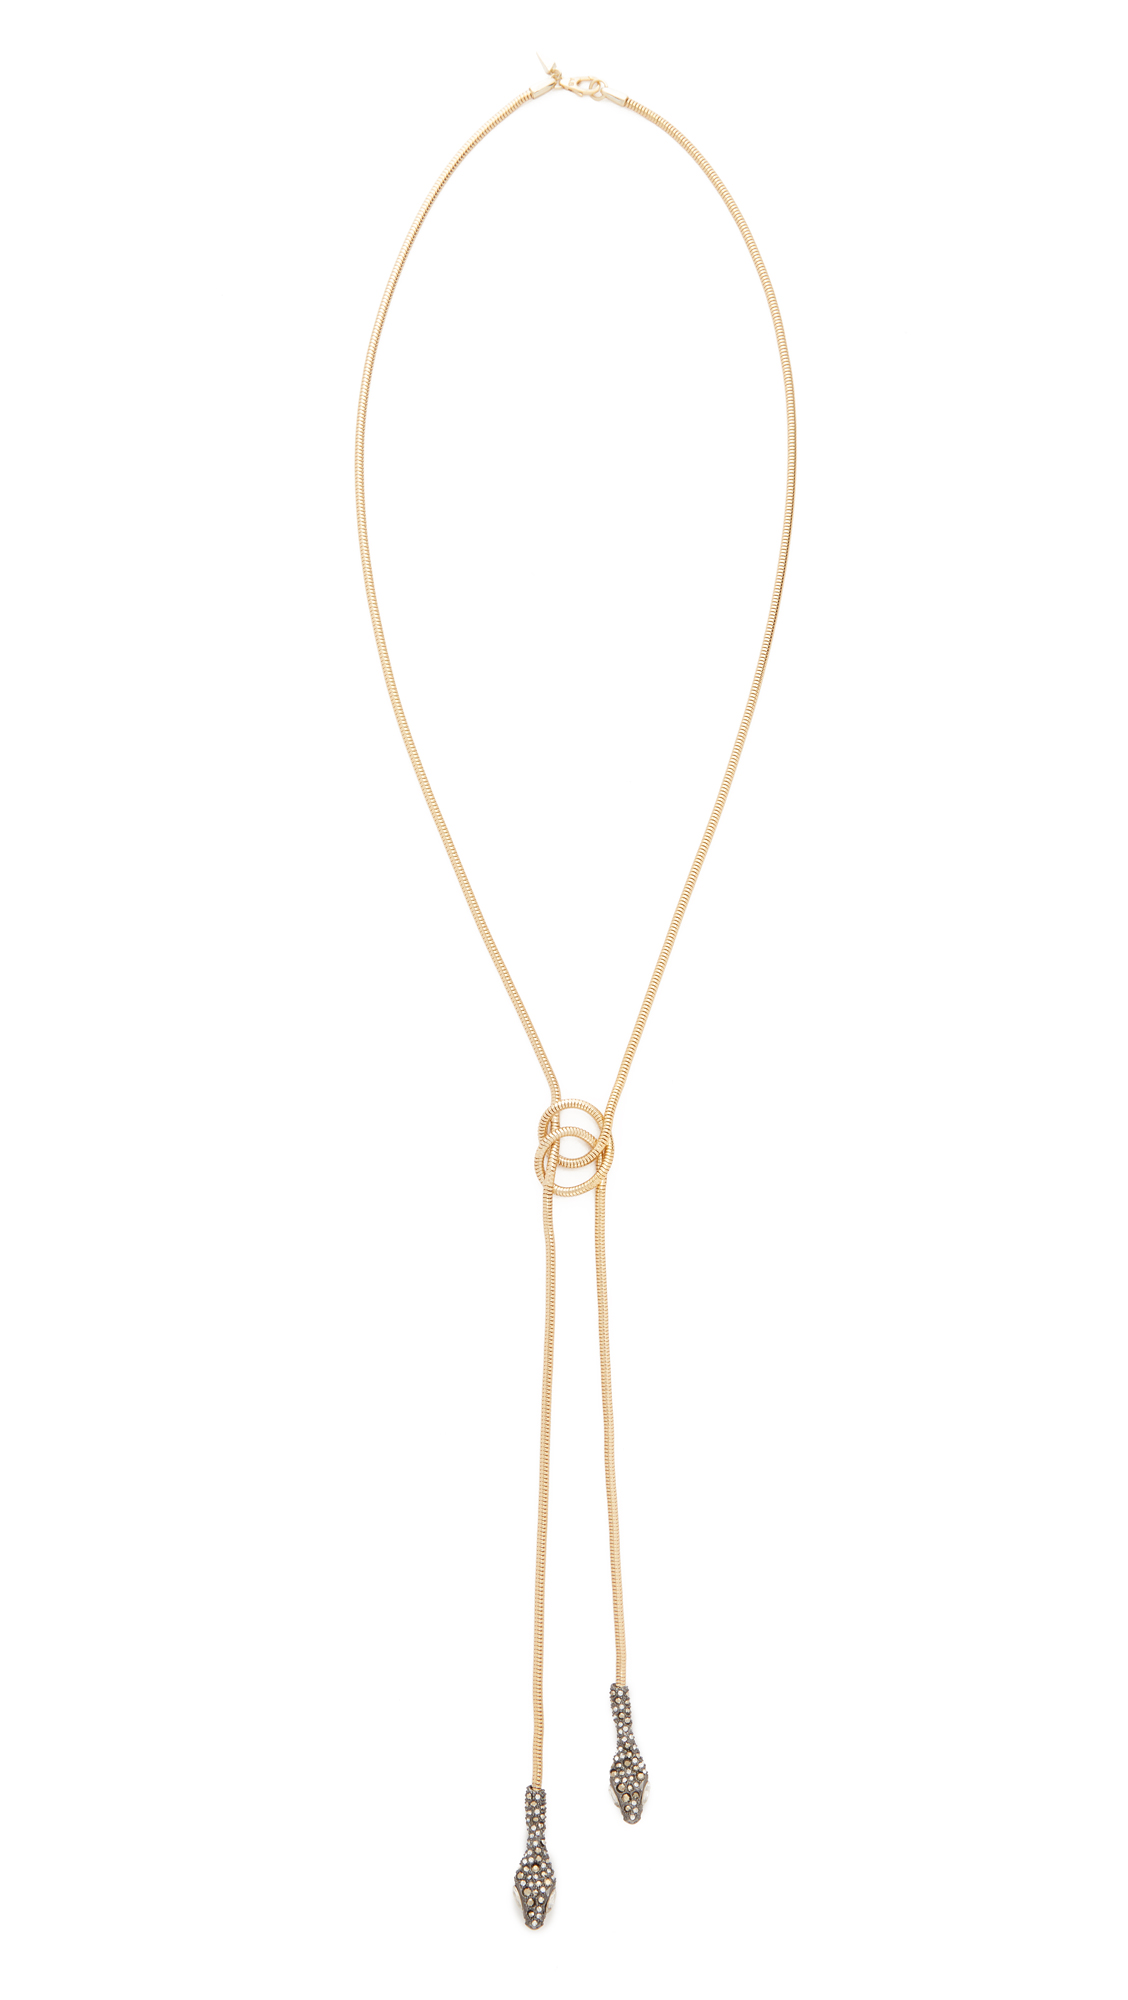 Alexis Bittar Lariat Knot Necklace - Gold